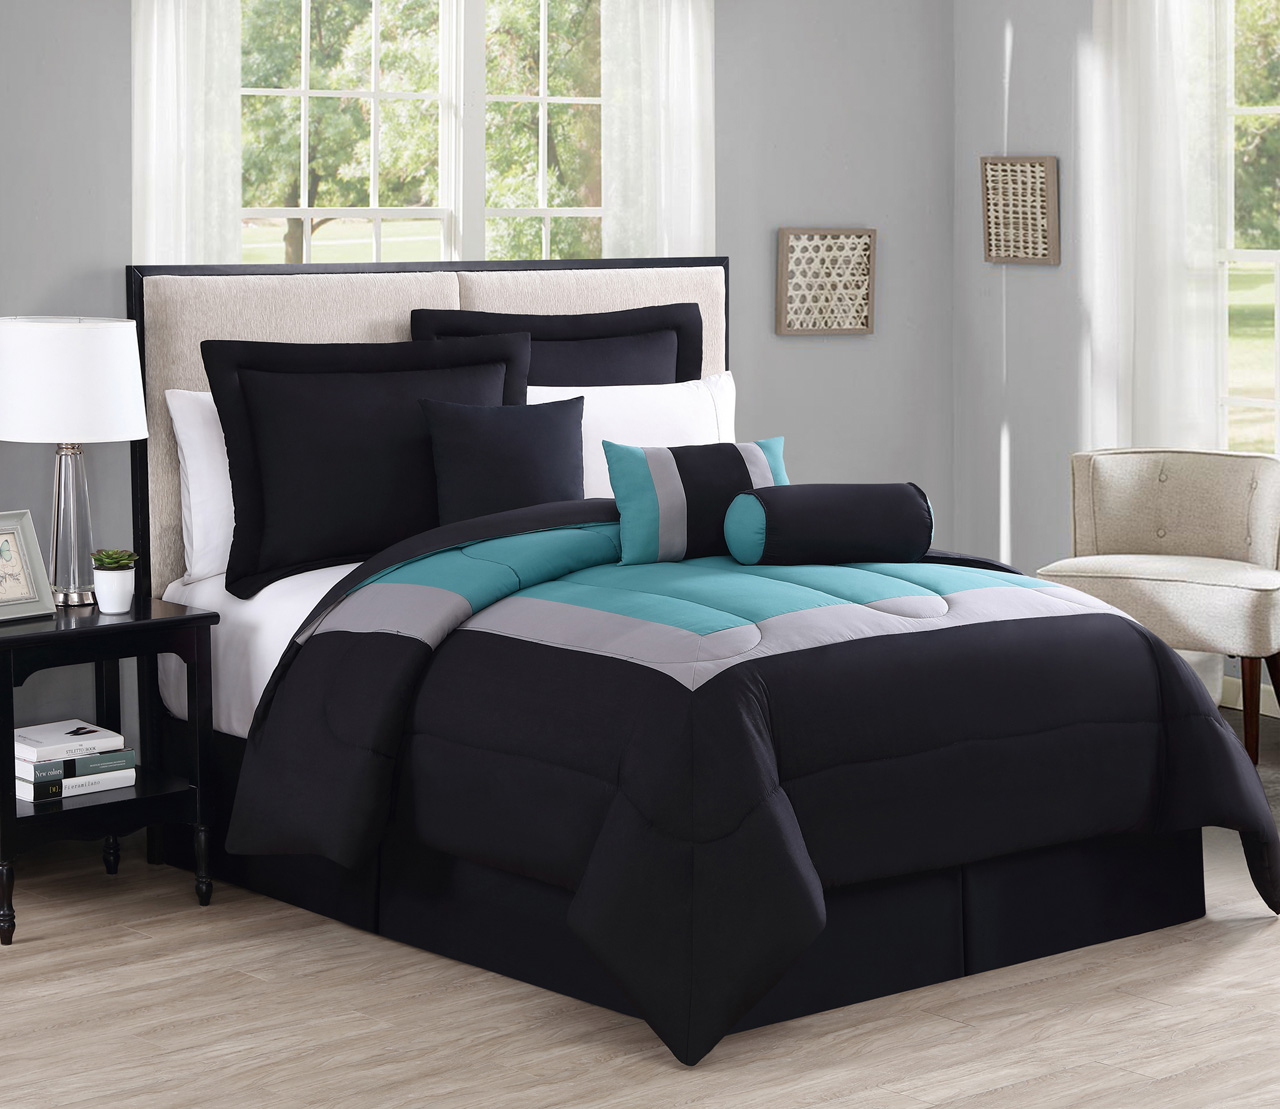 434000e3a82 7 Piece Queen Rosslyn Black Teal Comforter Set